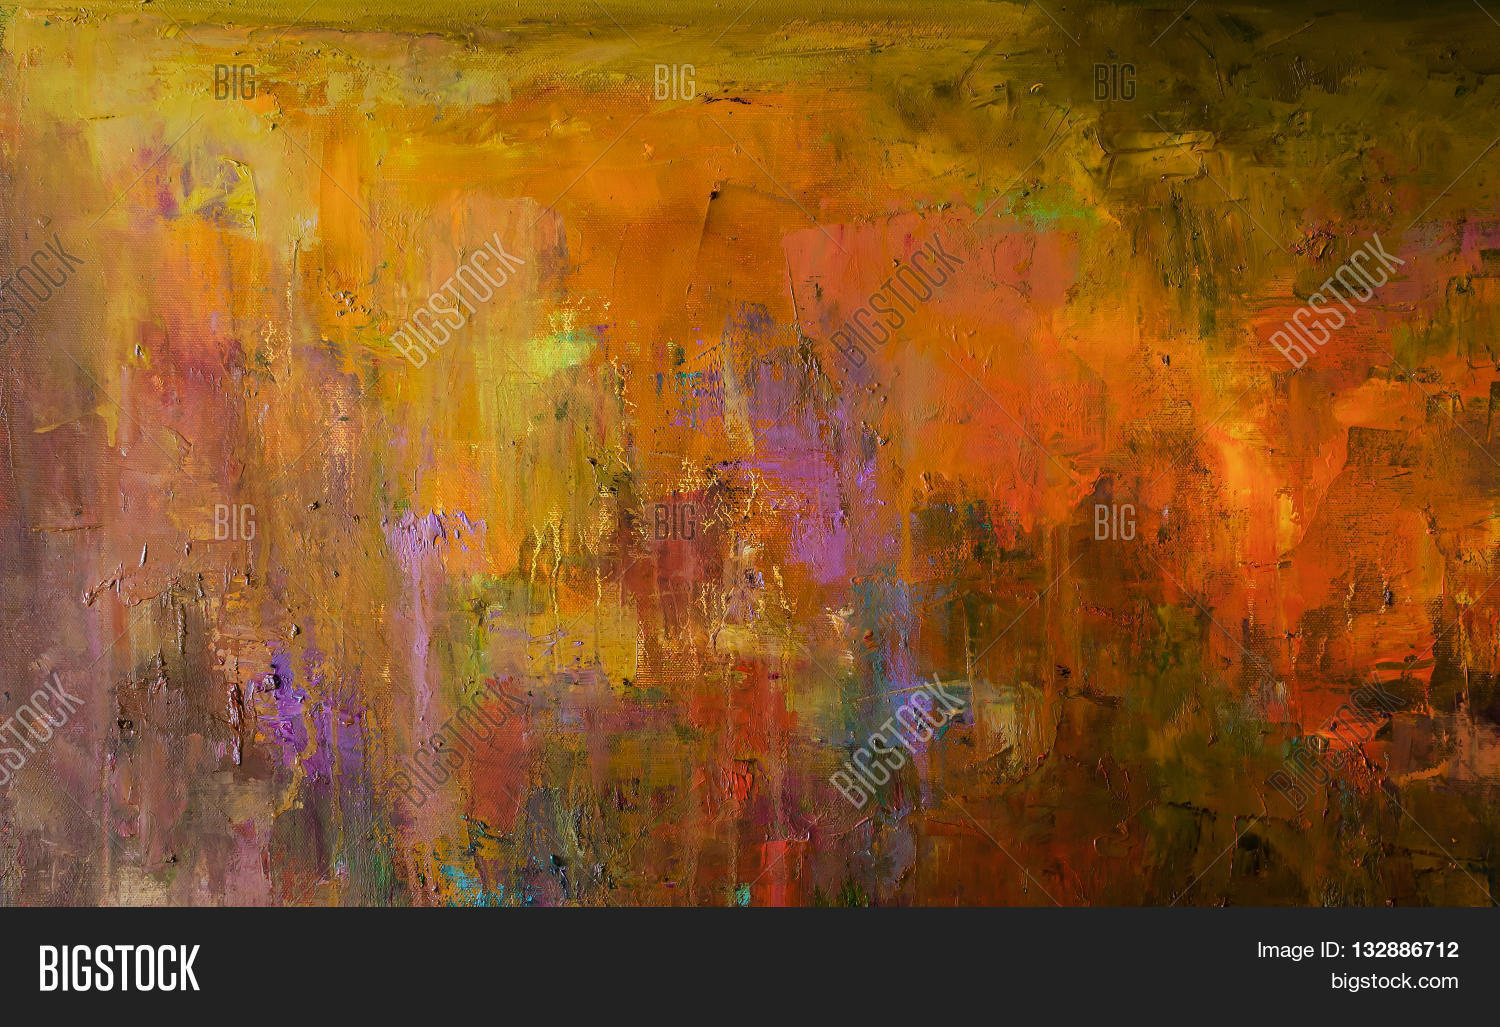 Abstract Oil Painting Image Photo Free Trial Bigstock